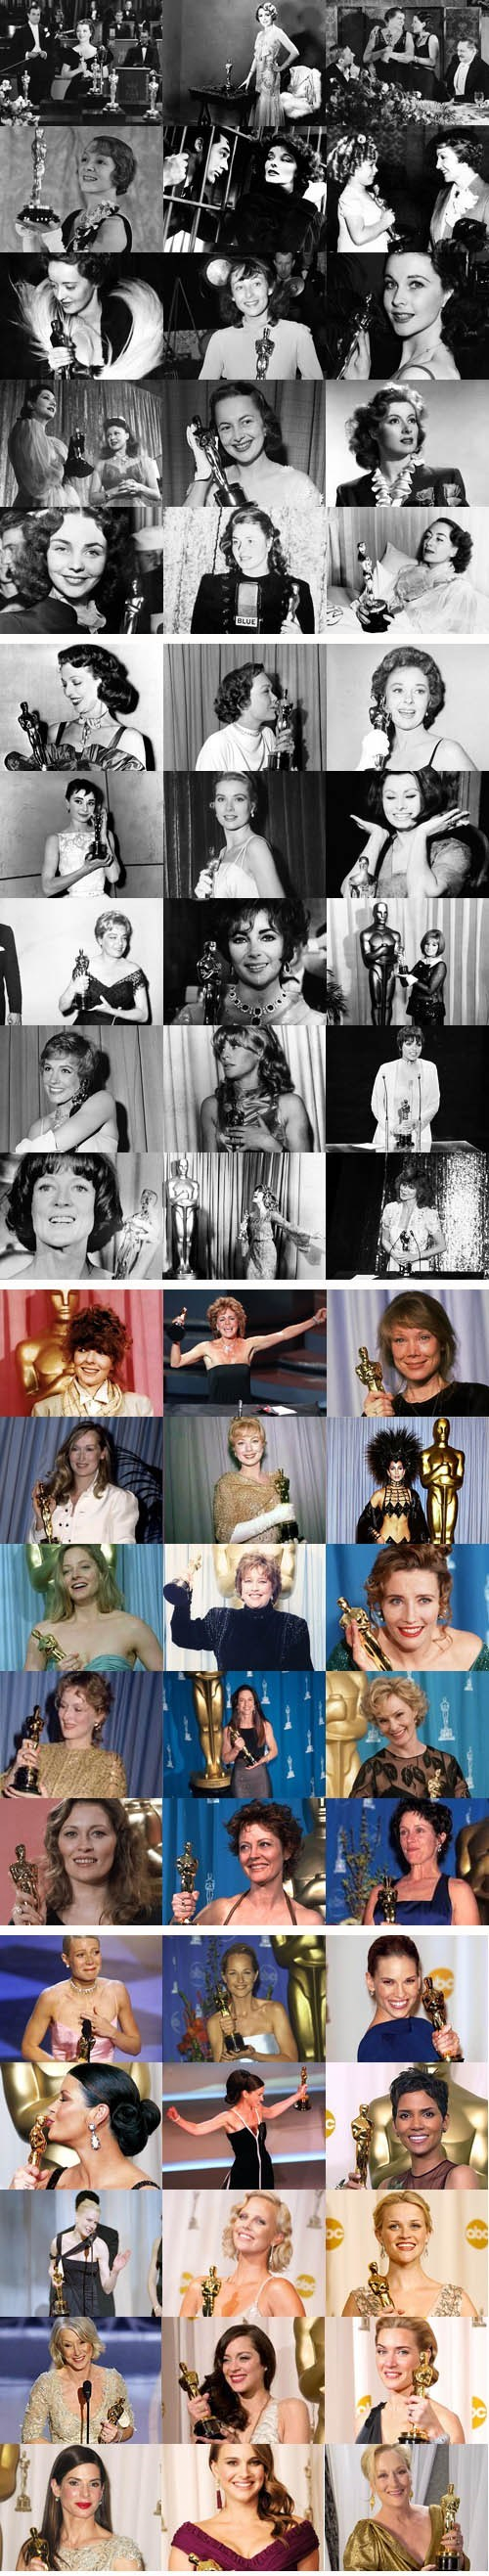 best actress,academy awards,oscars